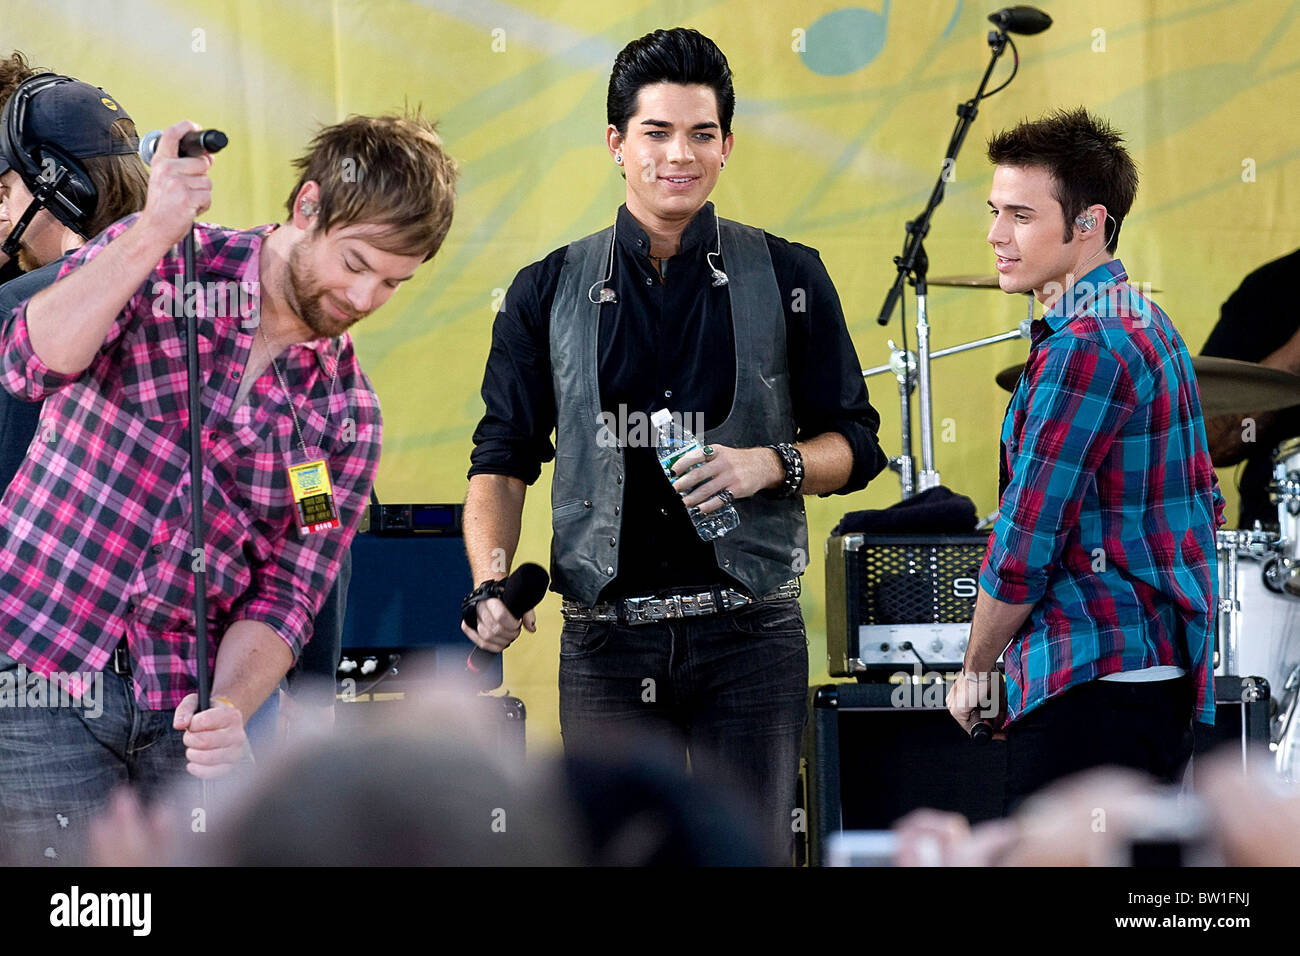 Good Morning America Performances : Good morning america concert with american idol stock